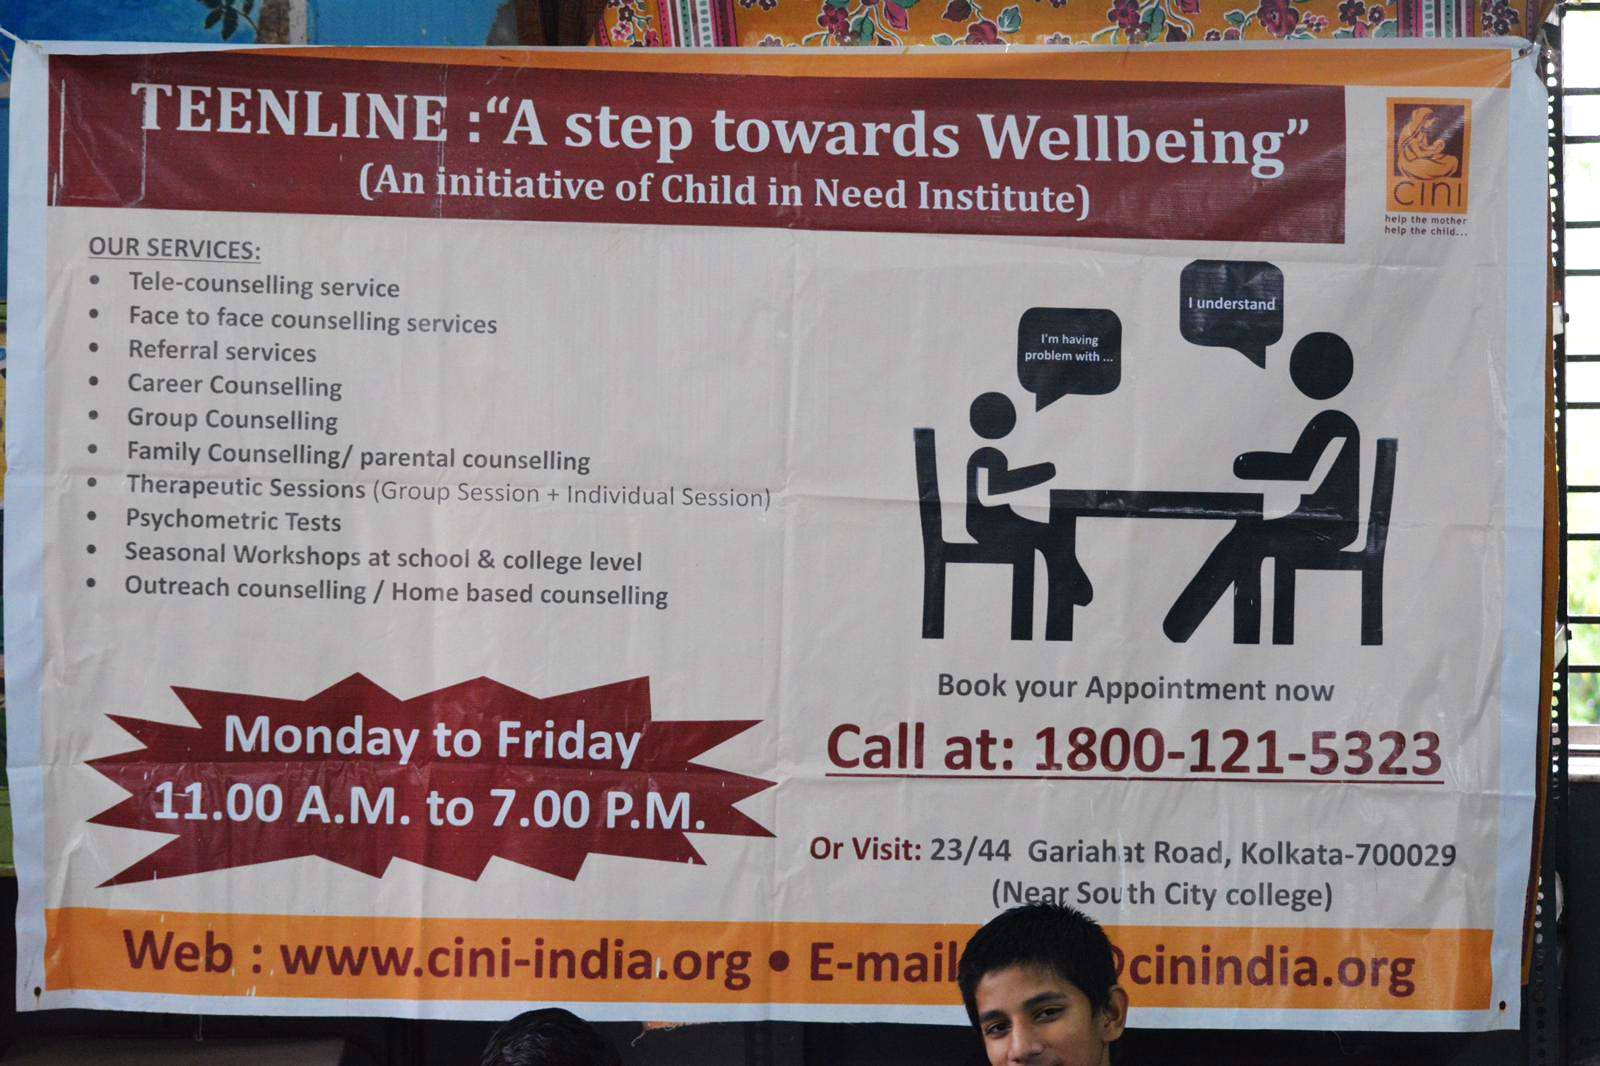 Young Teens & Parents, This Counselling Service Is Here To Your Rescue